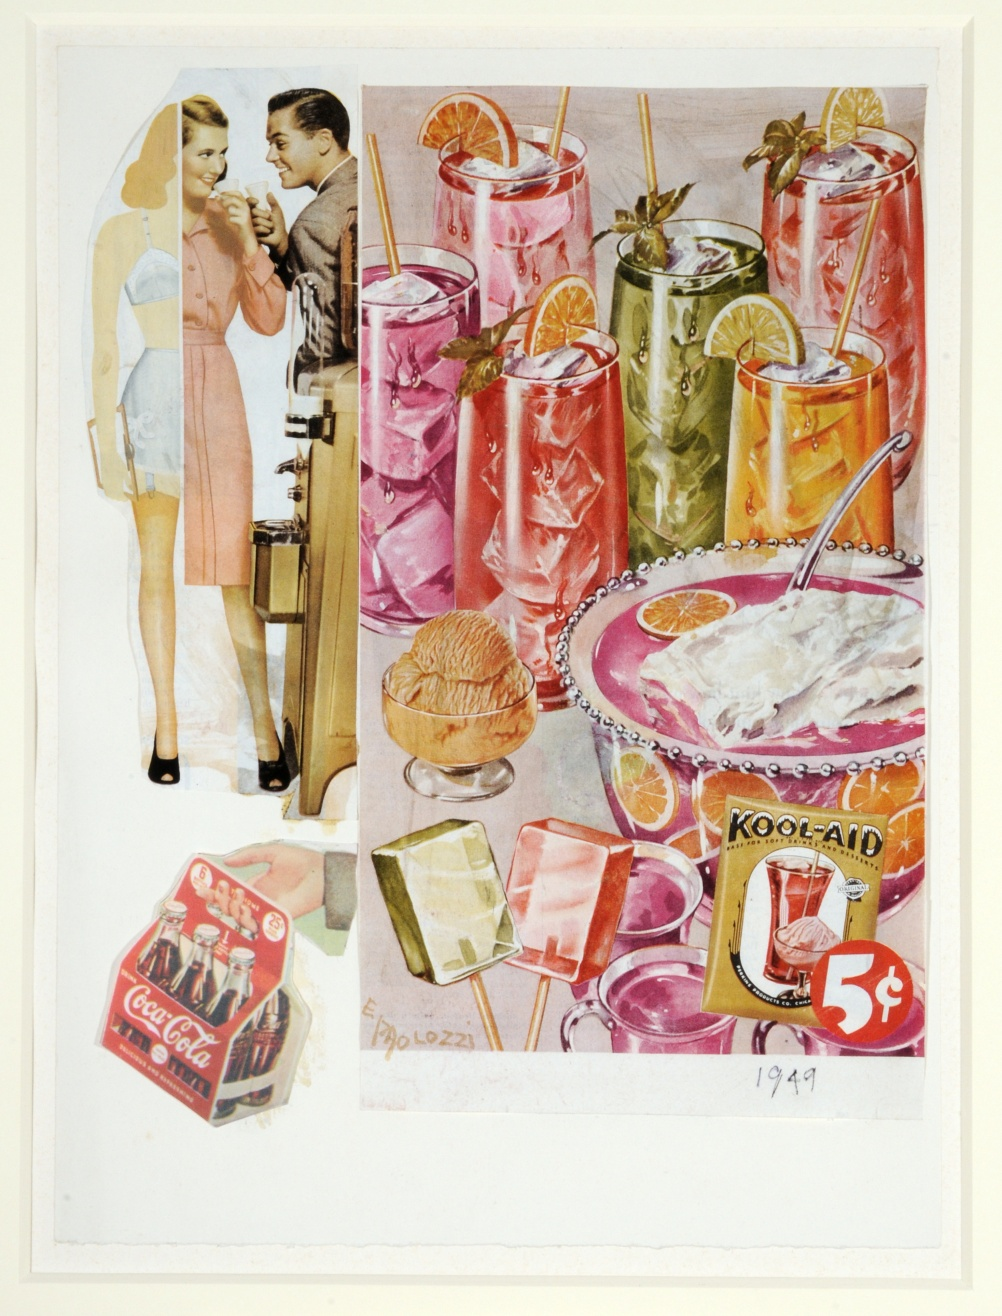 Eduardo Paolozzi, Refreshing and Delicious, 1949, Collage on paper, The Sherwin Collection © The Trustees of the Eduardo Paolozzi Foundation